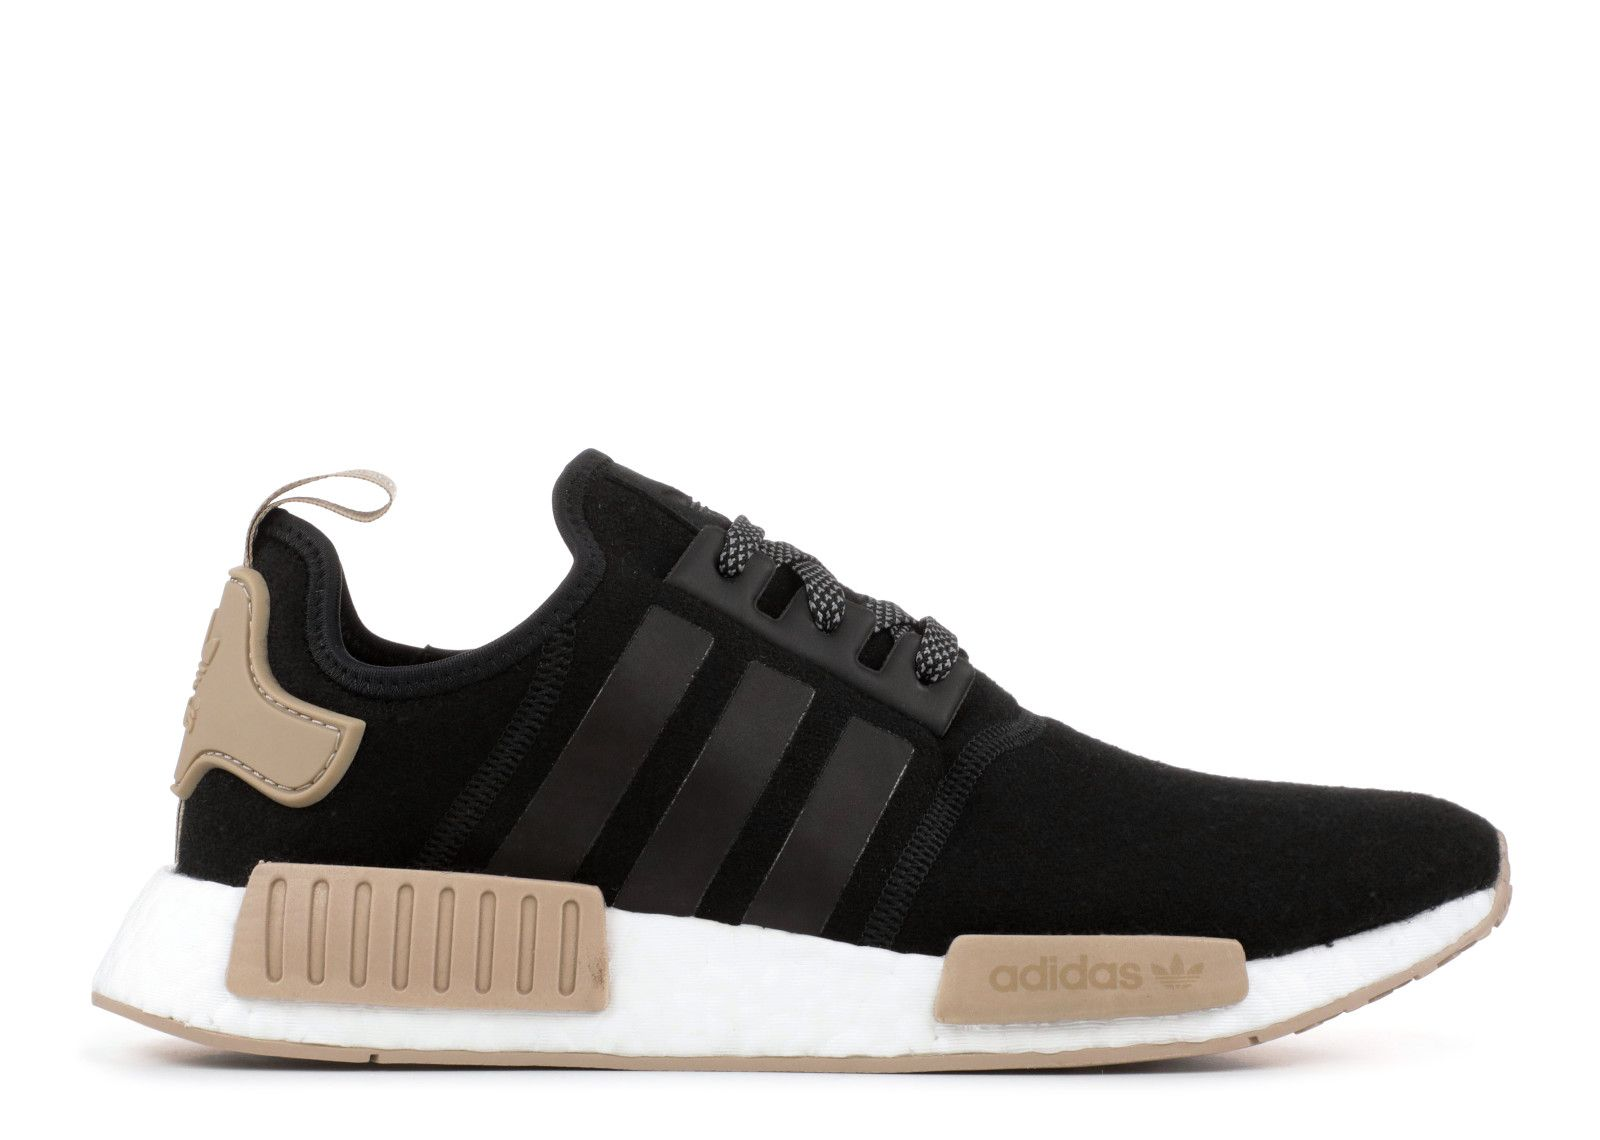 5a1ebd5d2 Where To Buy NMD R1 CHAMPS EXCLUSIVE sand black white cq0760 2018 Online